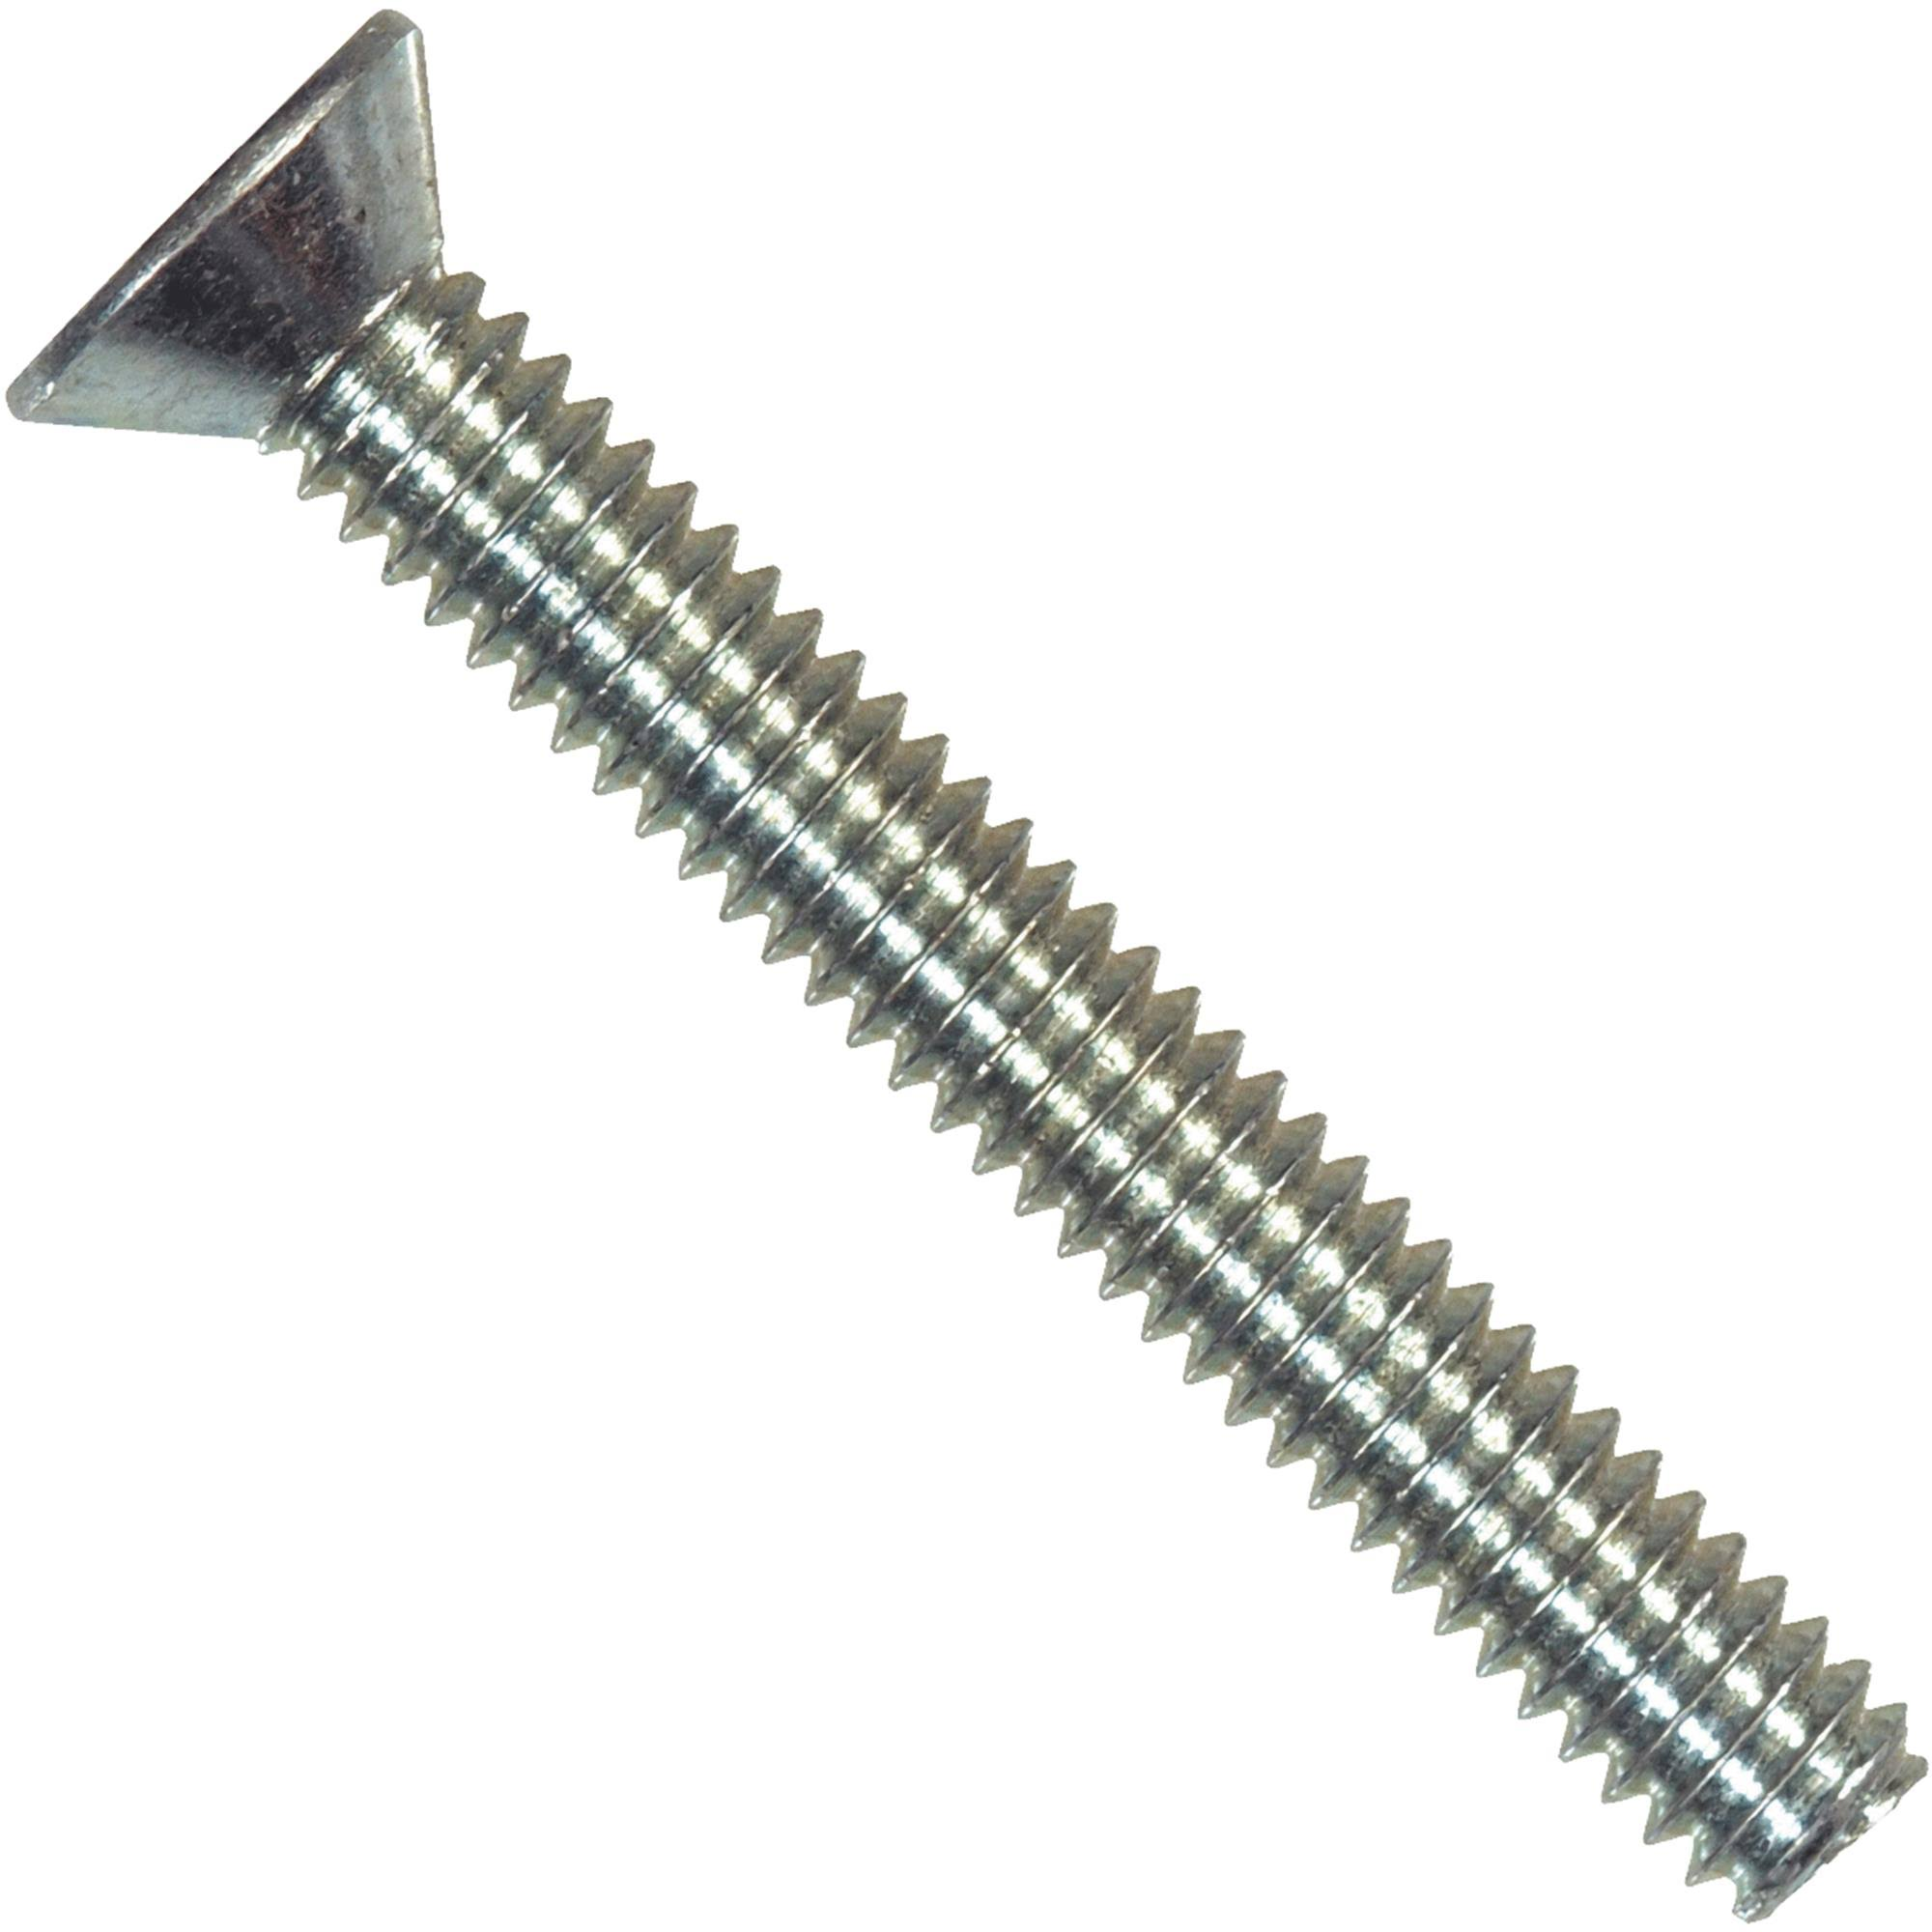 "Hillman Fasteners 101137 Flat Head Machine Screw - 1/4"" x 3/4"", 100pcs"